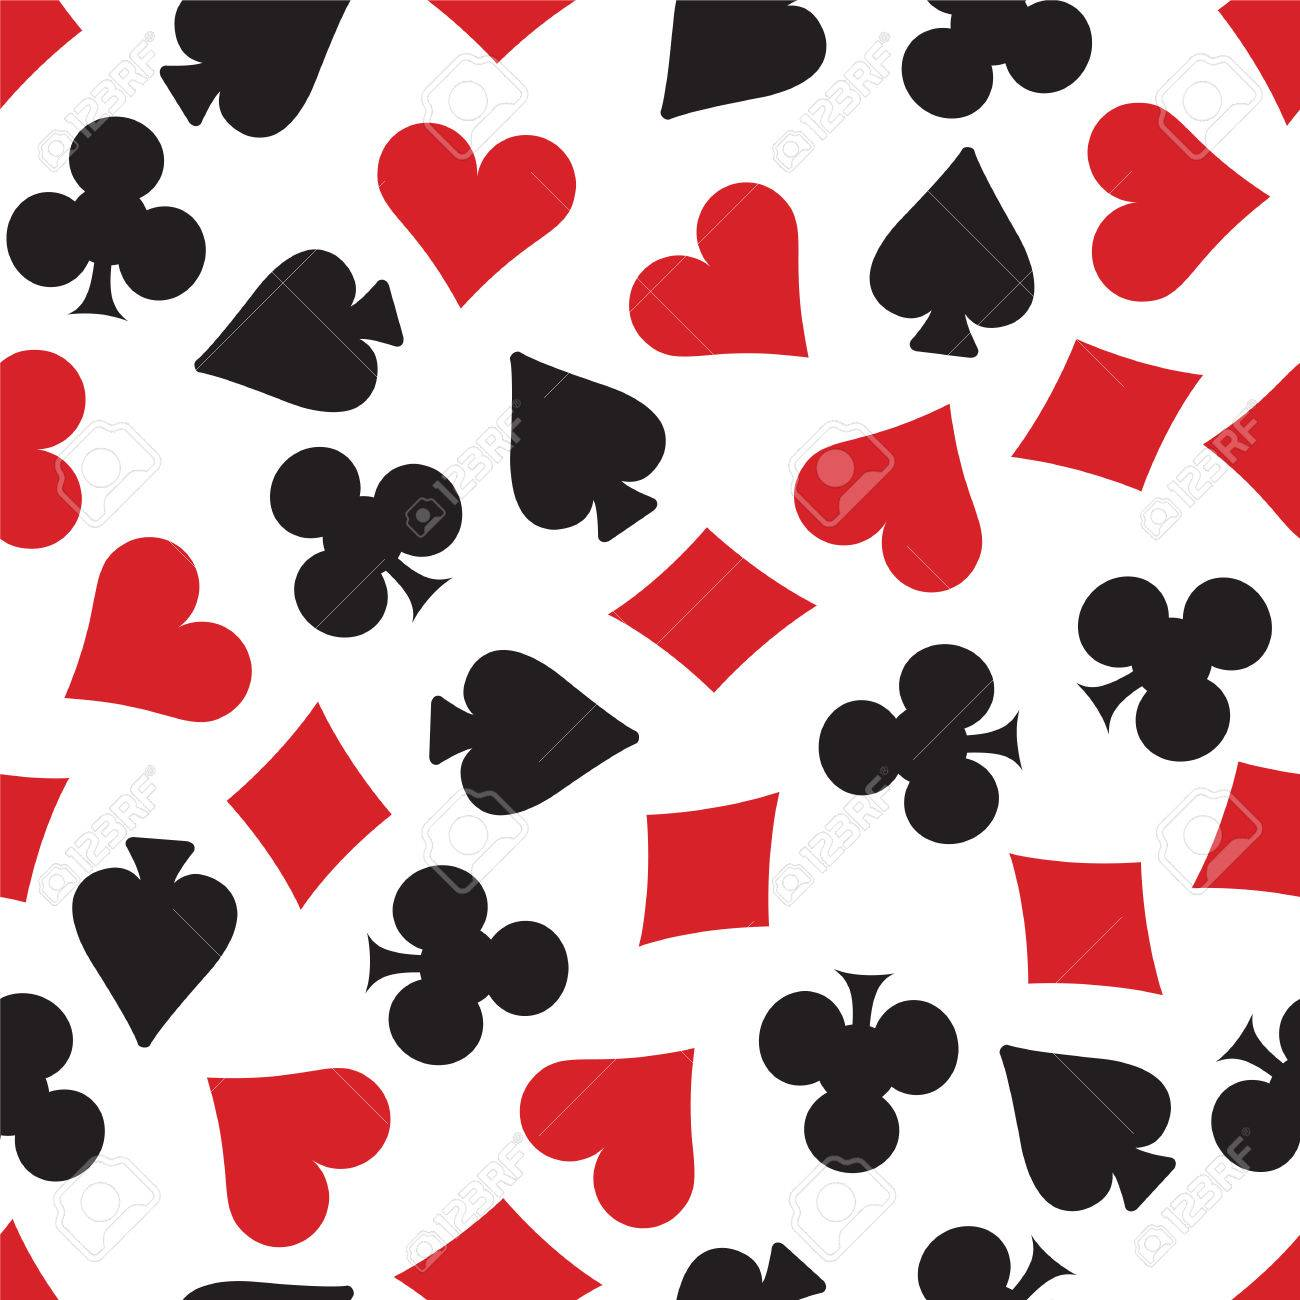 hearts spades clubs and diamonds card suits background repeating